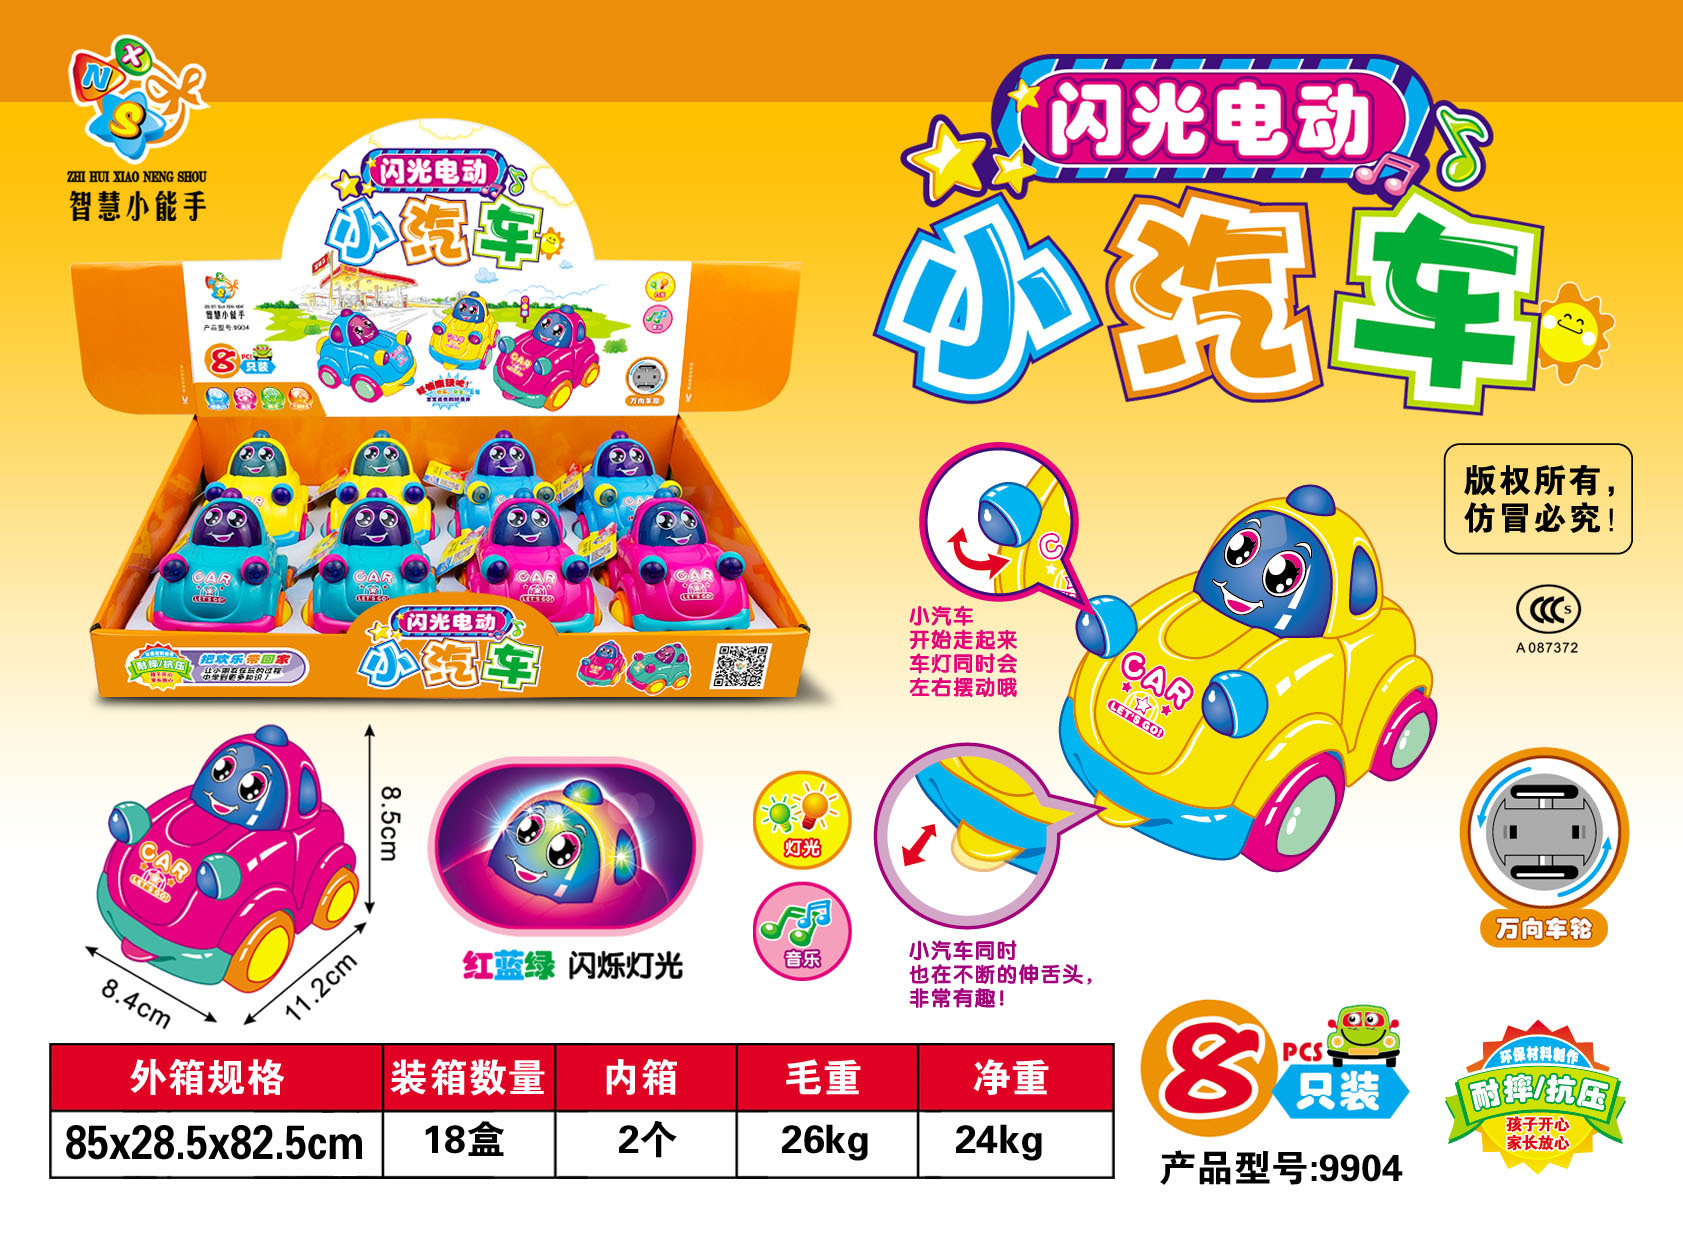 9904 Wisdom Expert Flash Music Electric Car Toy 8 Pack Q Board Large Size Car